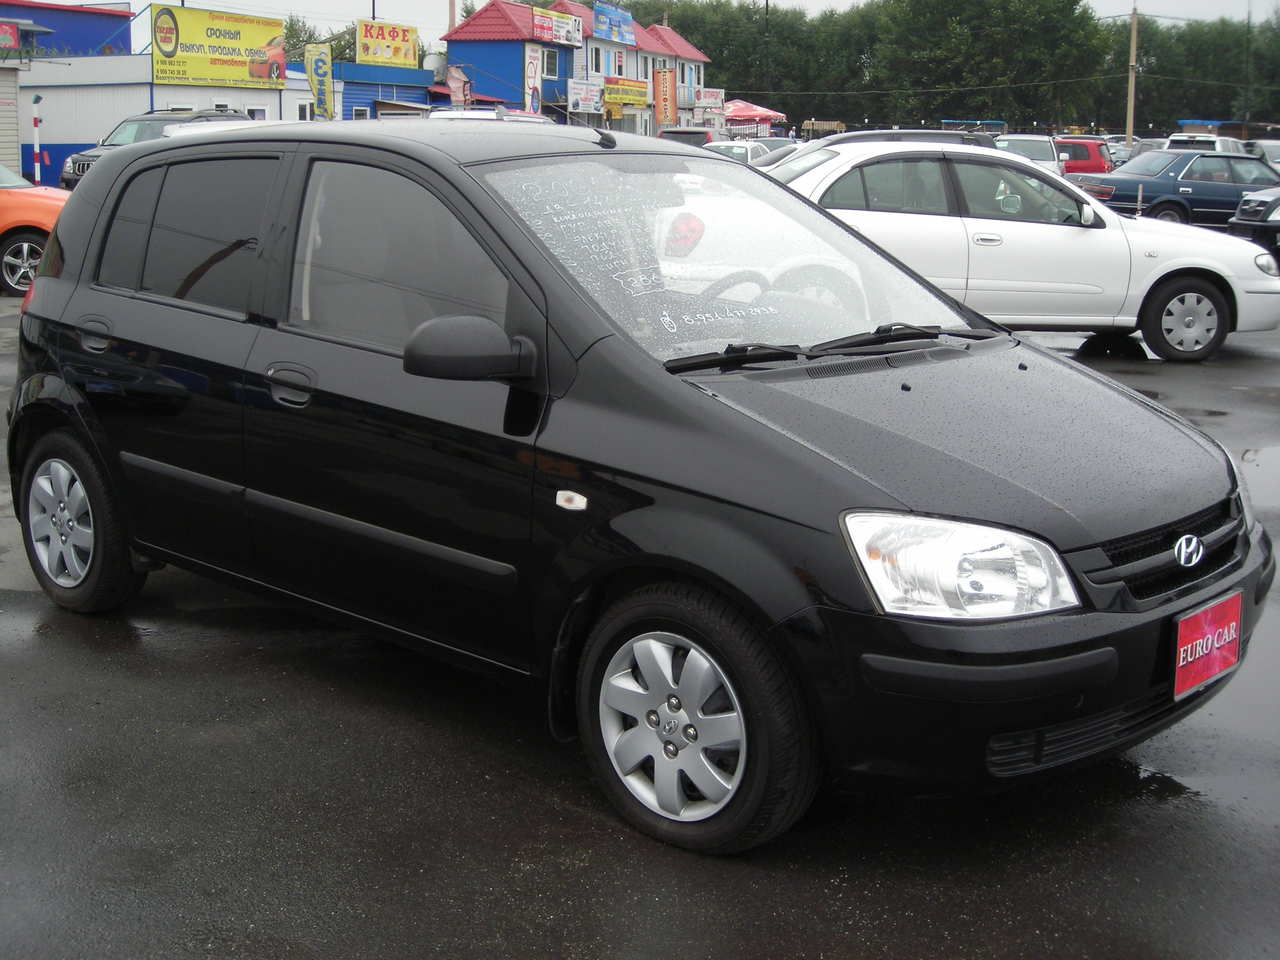 2005 hyundai getz pictures gasoline ff manual for sale. Black Bedroom Furniture Sets. Home Design Ideas